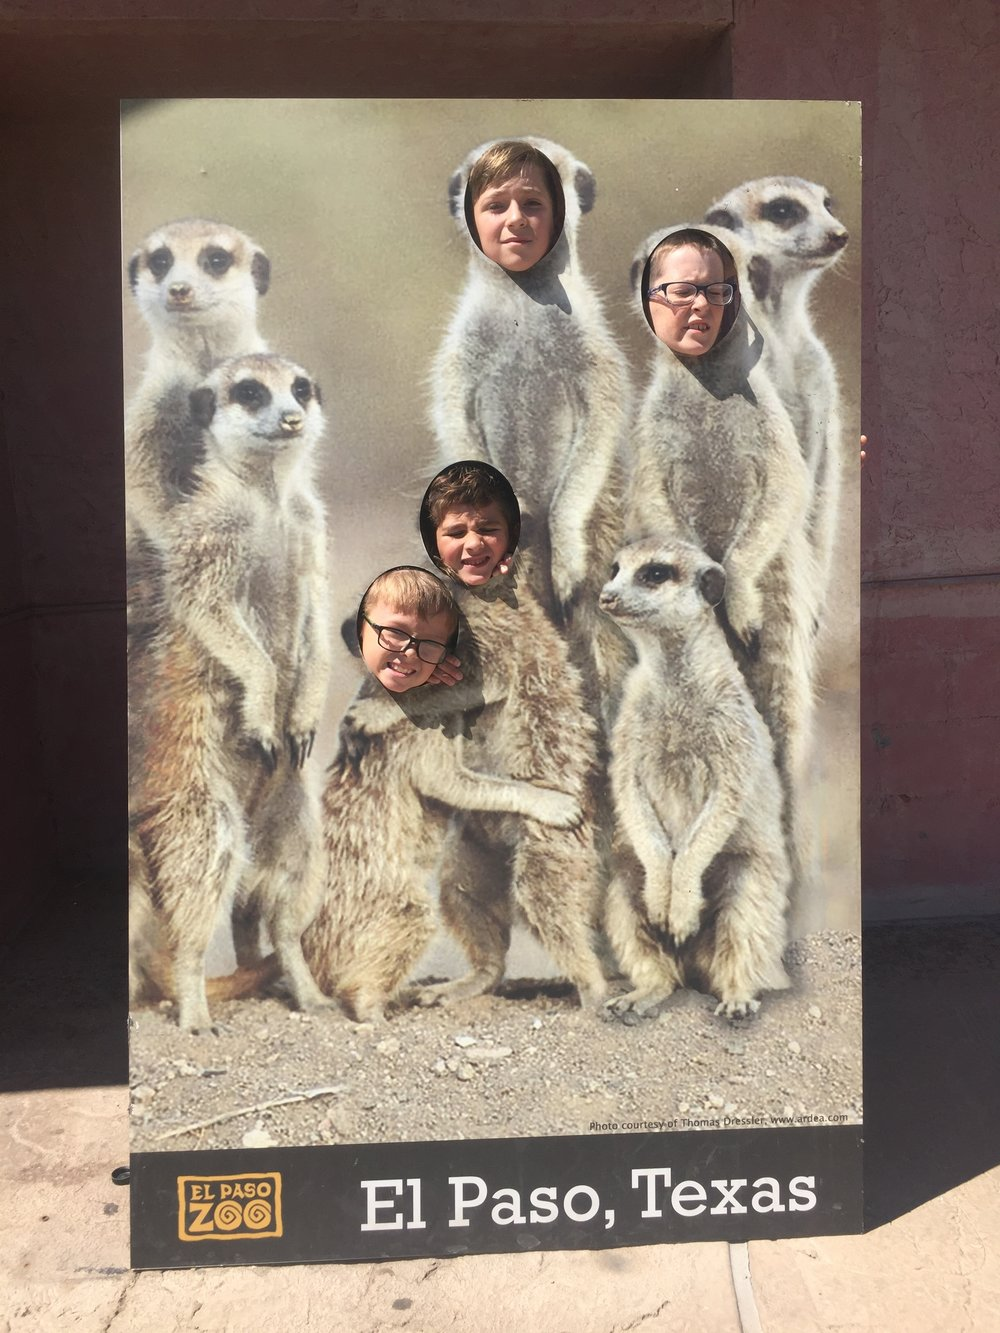 Look at these cute meerkats we found!